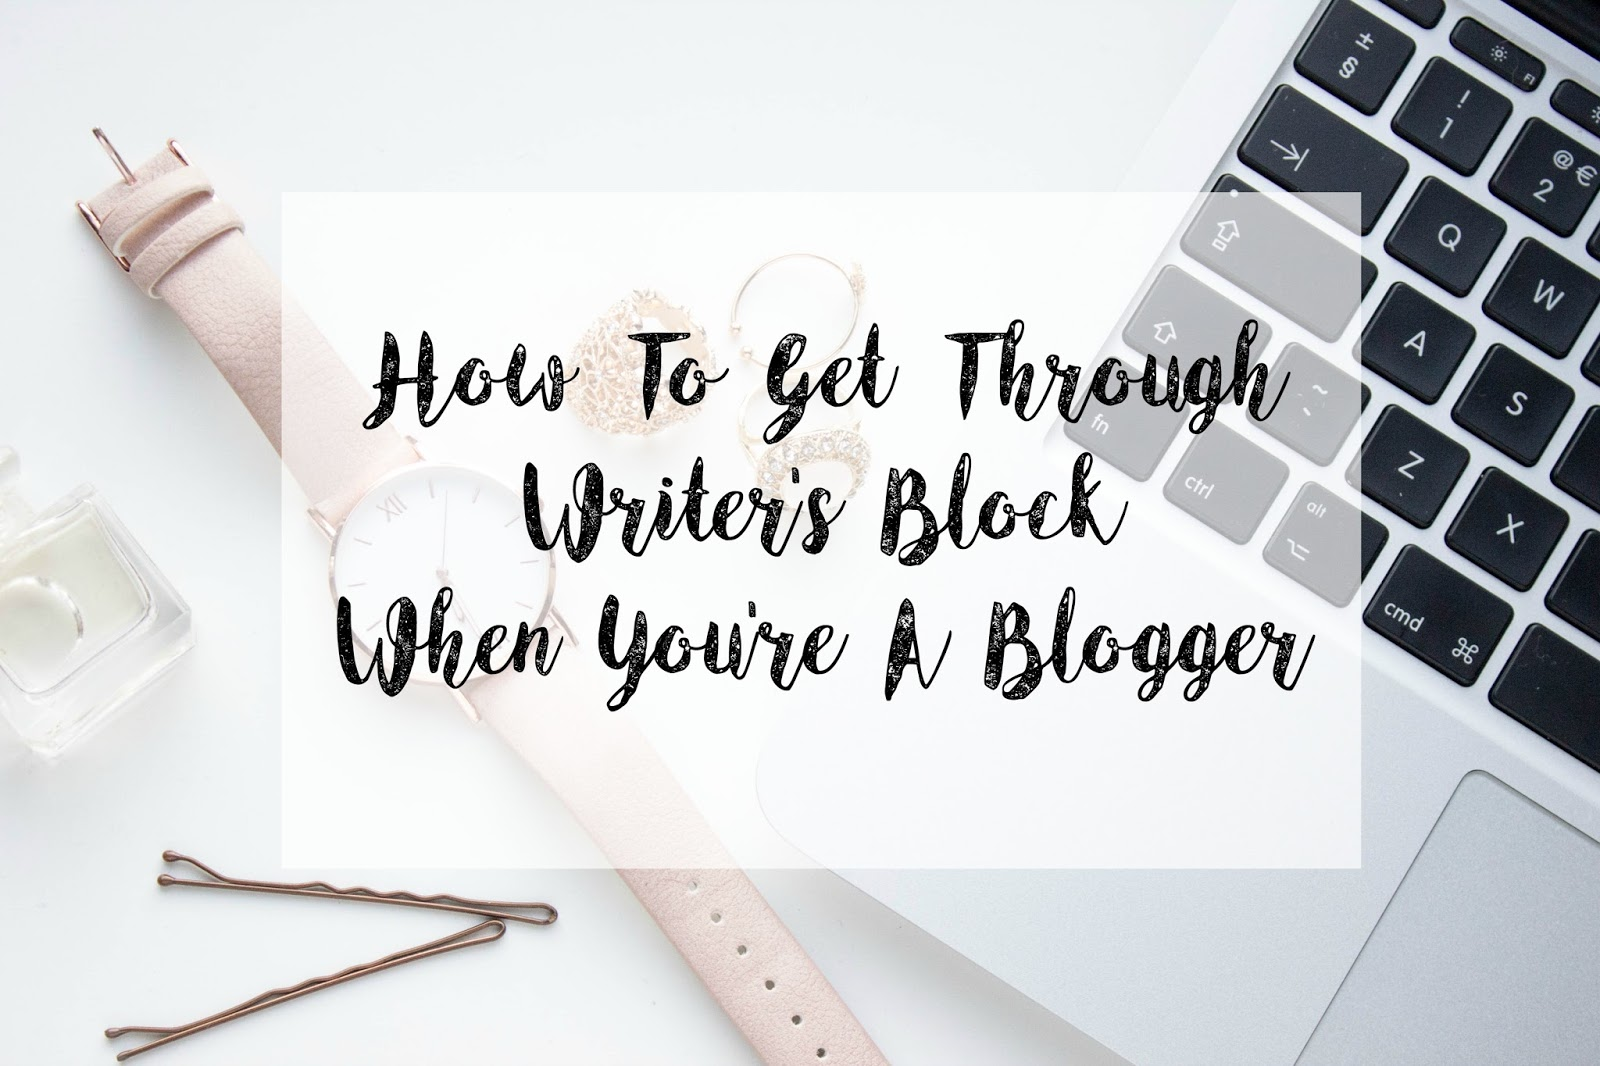 Blogging inspiration, Blogger's Block, Writer's Block, Writers' Block, Blogging problems, Can't write, Can't find writing inspiration, Beauty Blogs, Lifestyle blogs, Derbyshire, Katie Writes,